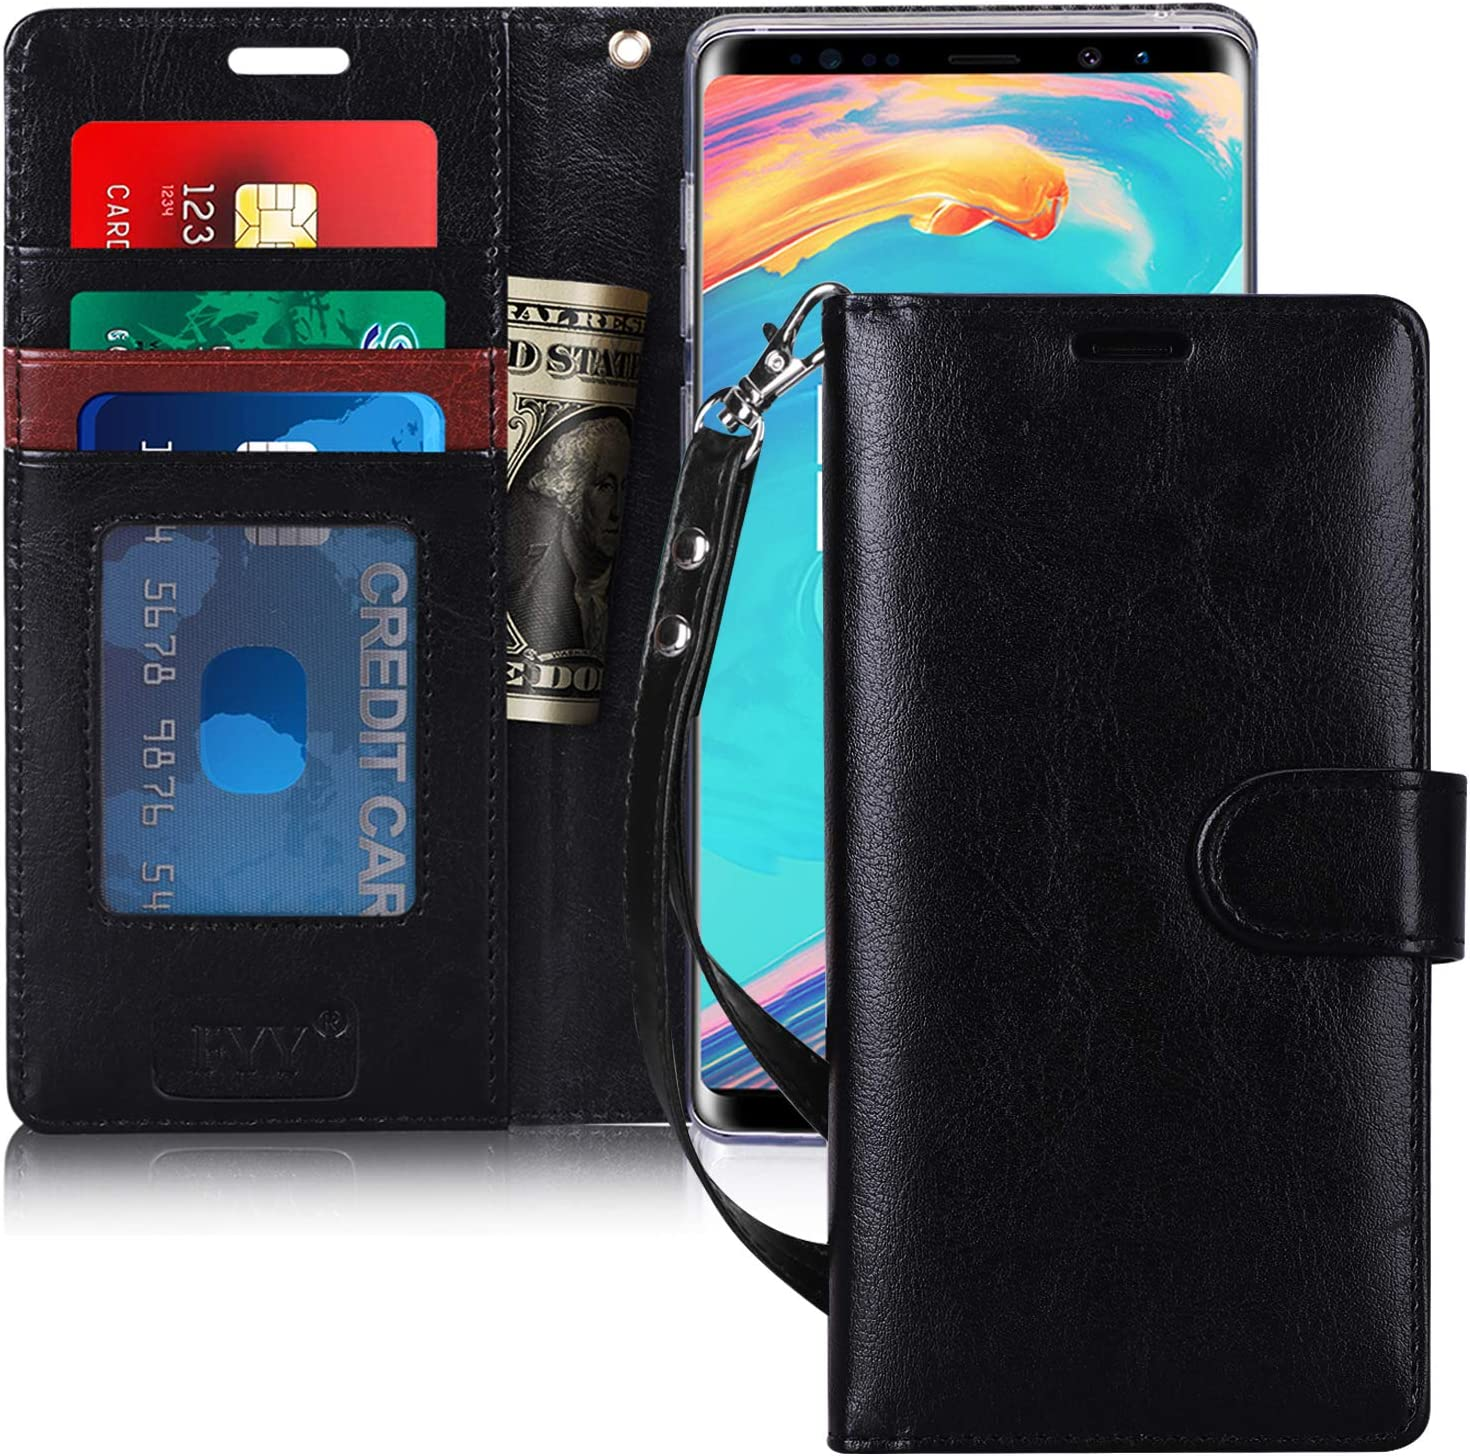 Samsung Galaxy Note9 Flip Case Cover for Leather Card Holders Premium Business Kickstand Wallet case Flip Cover